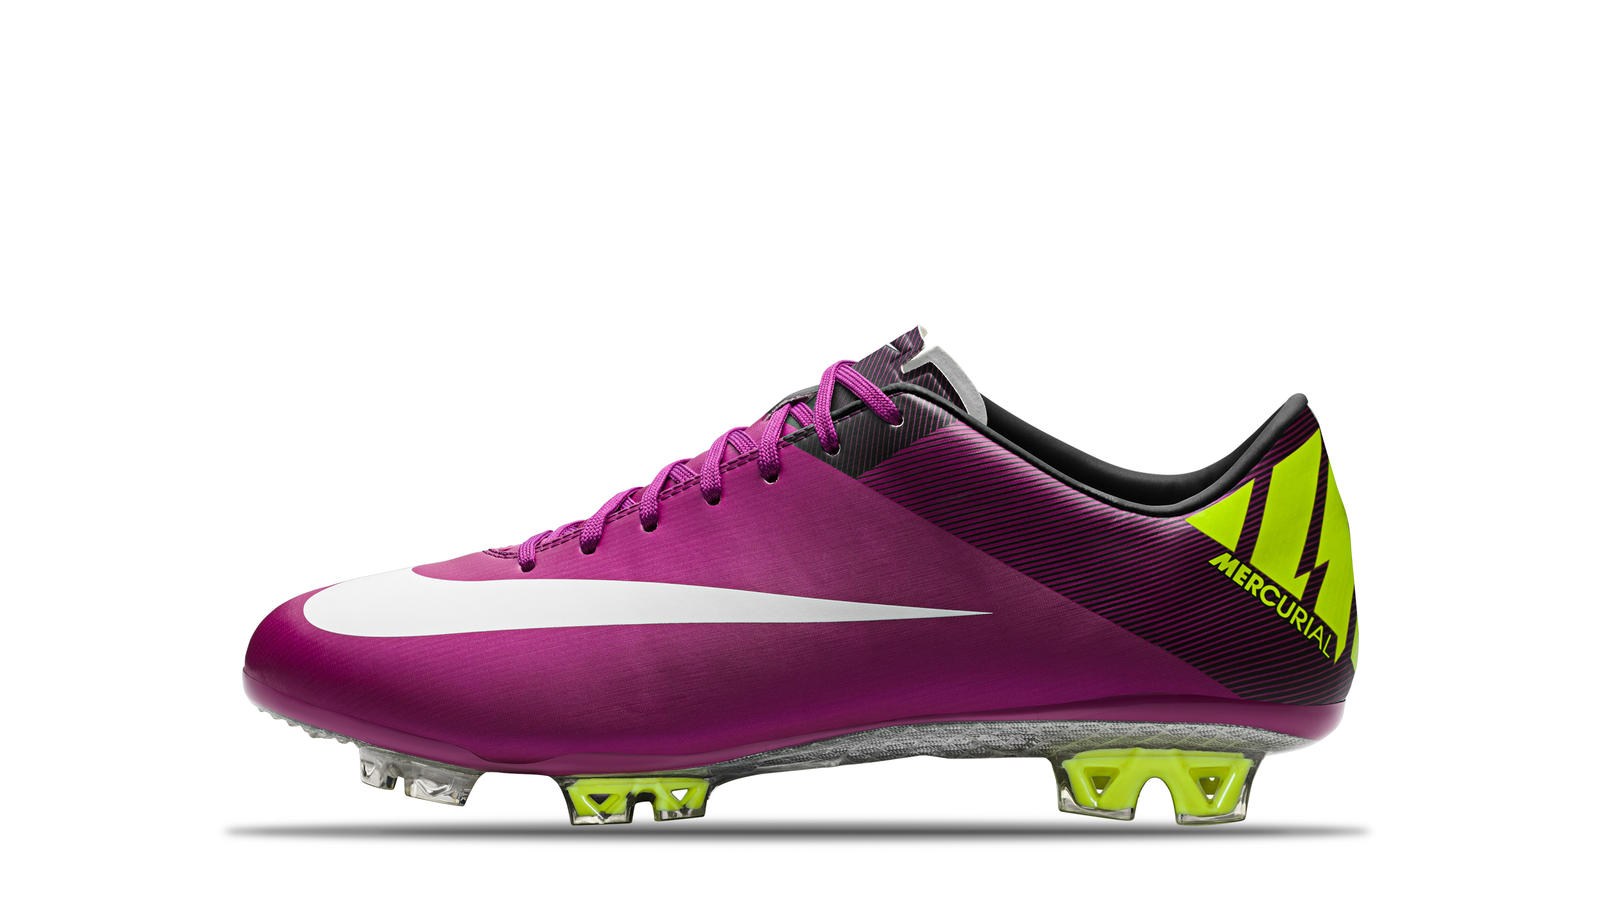 2011 Mercurial Superfly III Red Plum Windchill Volt Black